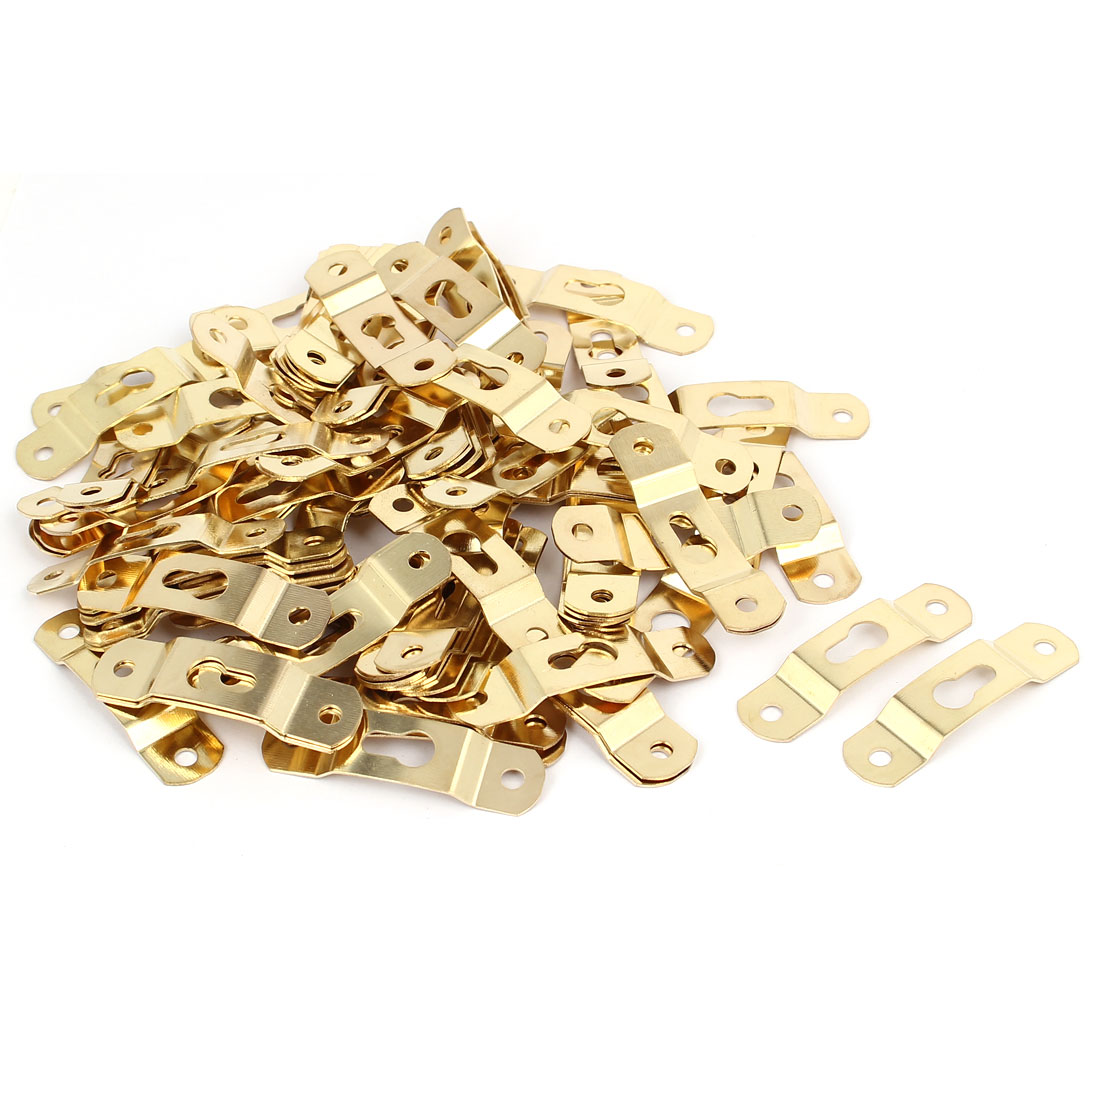 50mmx13mmx4mm Wall Hanging Picture Photo Frame Hidden Hook Gold Tone 100pcs